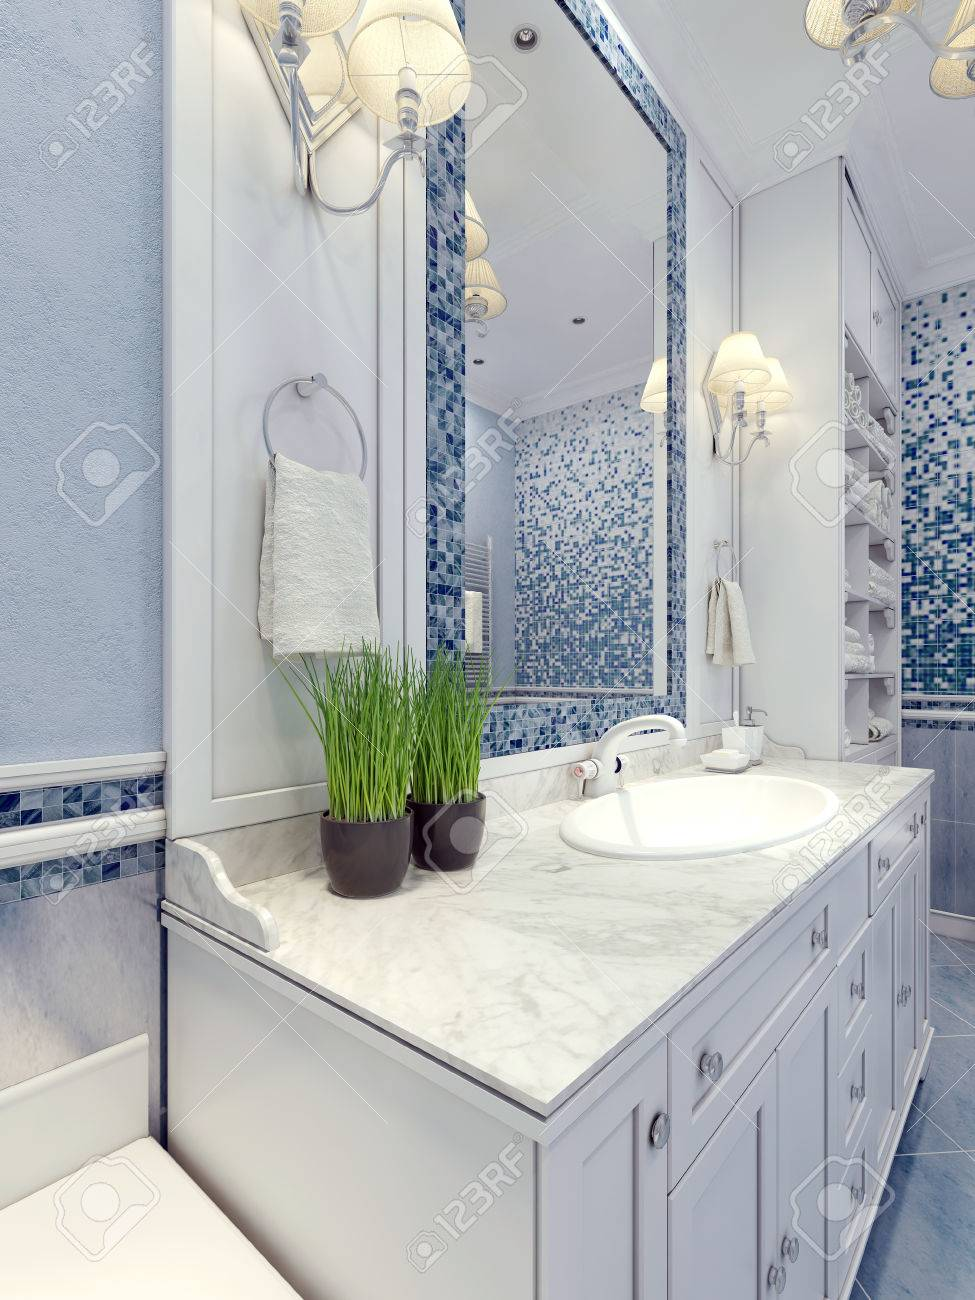 Provence Blue Bathroom Trend. Bathroom Furniture In White. A.. Stock ...